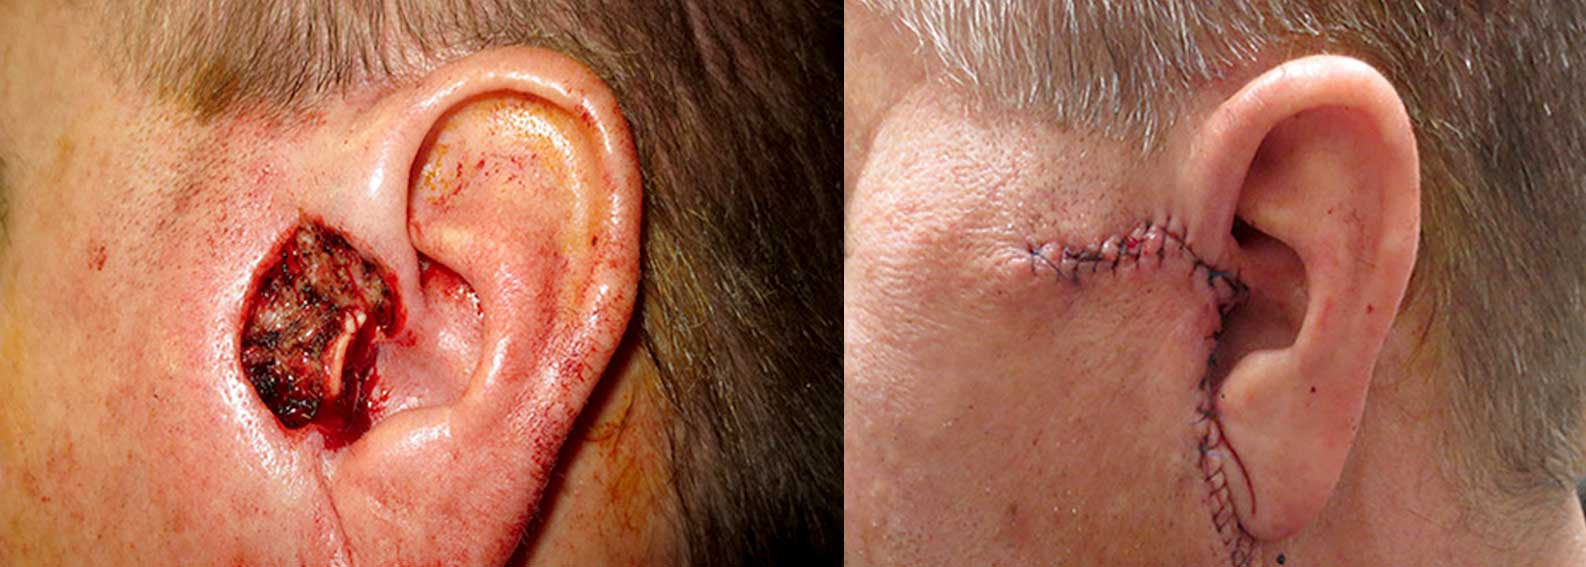 Before and after of Mohs skin cancer surgery on a patients ear.